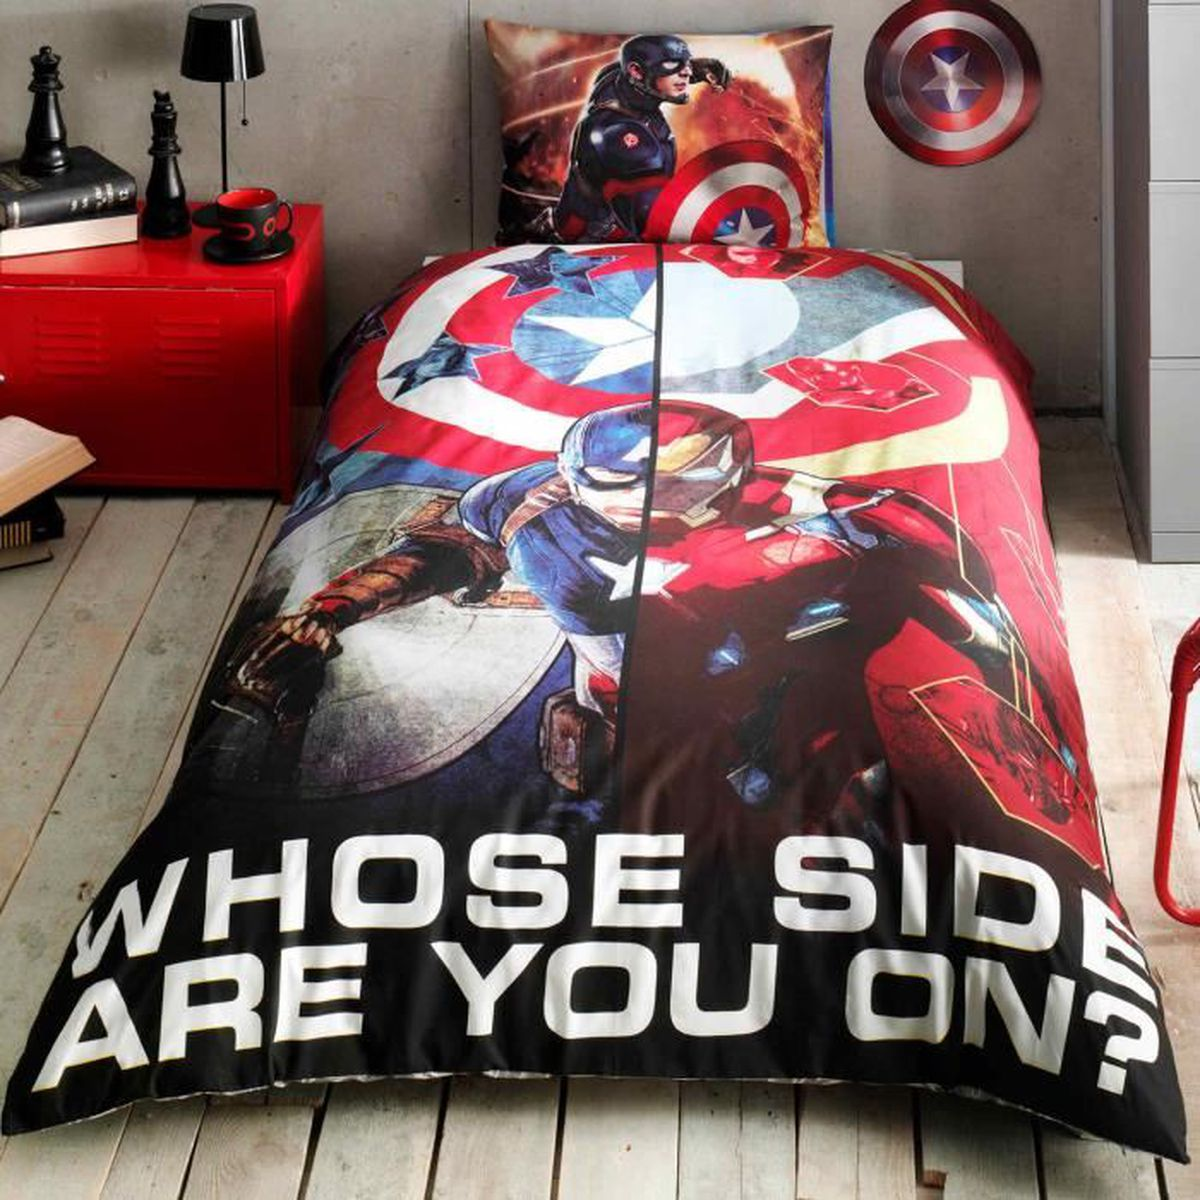 captain america imprim e 100 coton 1 personne parure de couette 3 pcs housse de couette. Black Bedroom Furniture Sets. Home Design Ideas